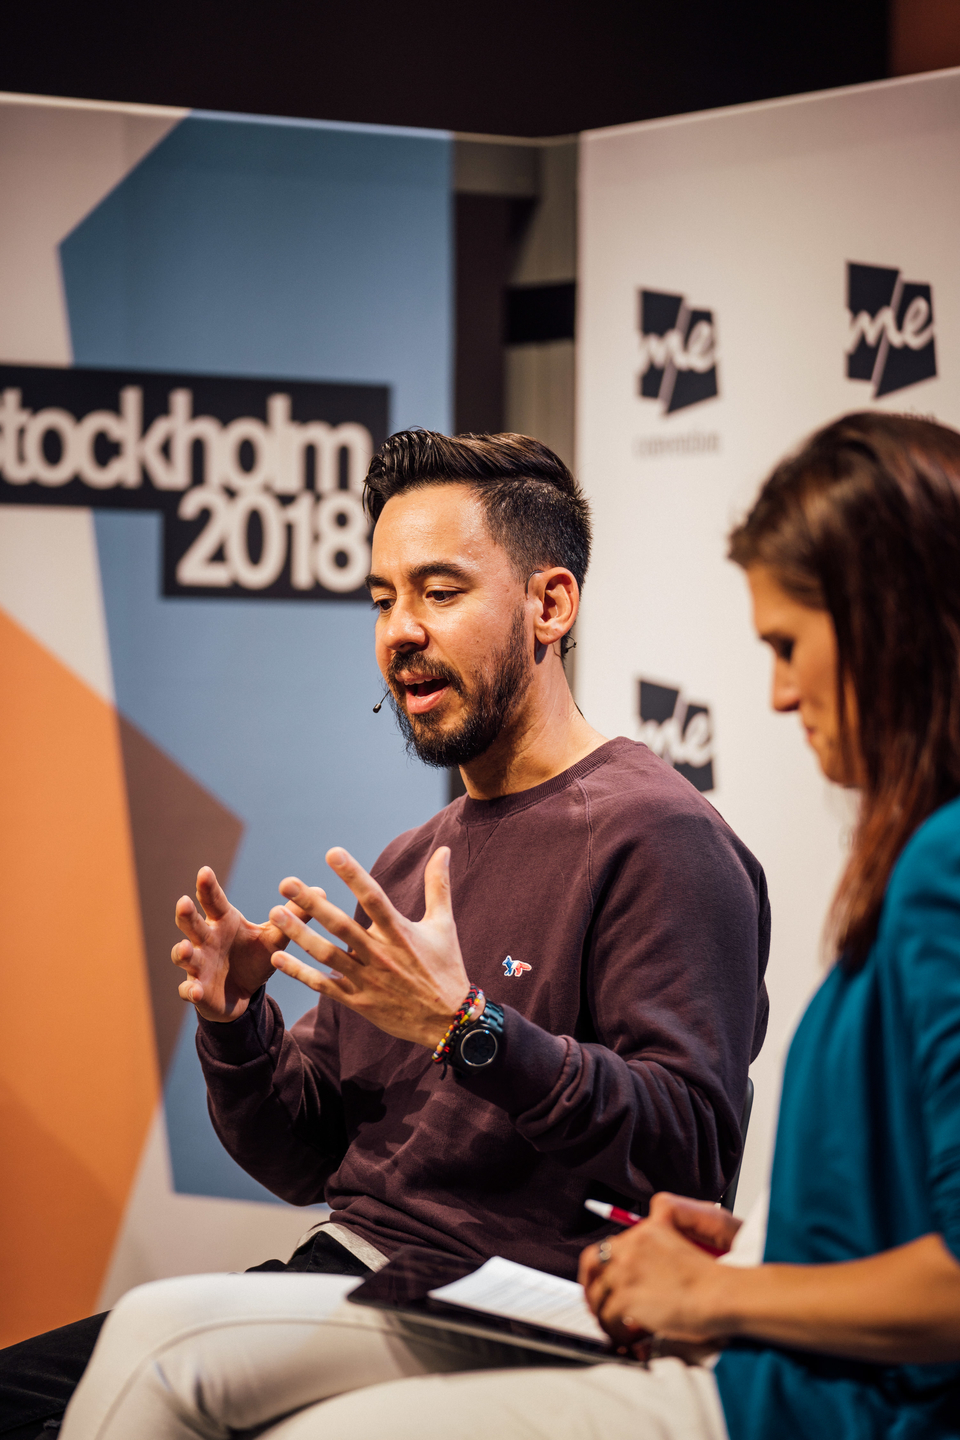 Mike Shinoda of the band Linkin Park during